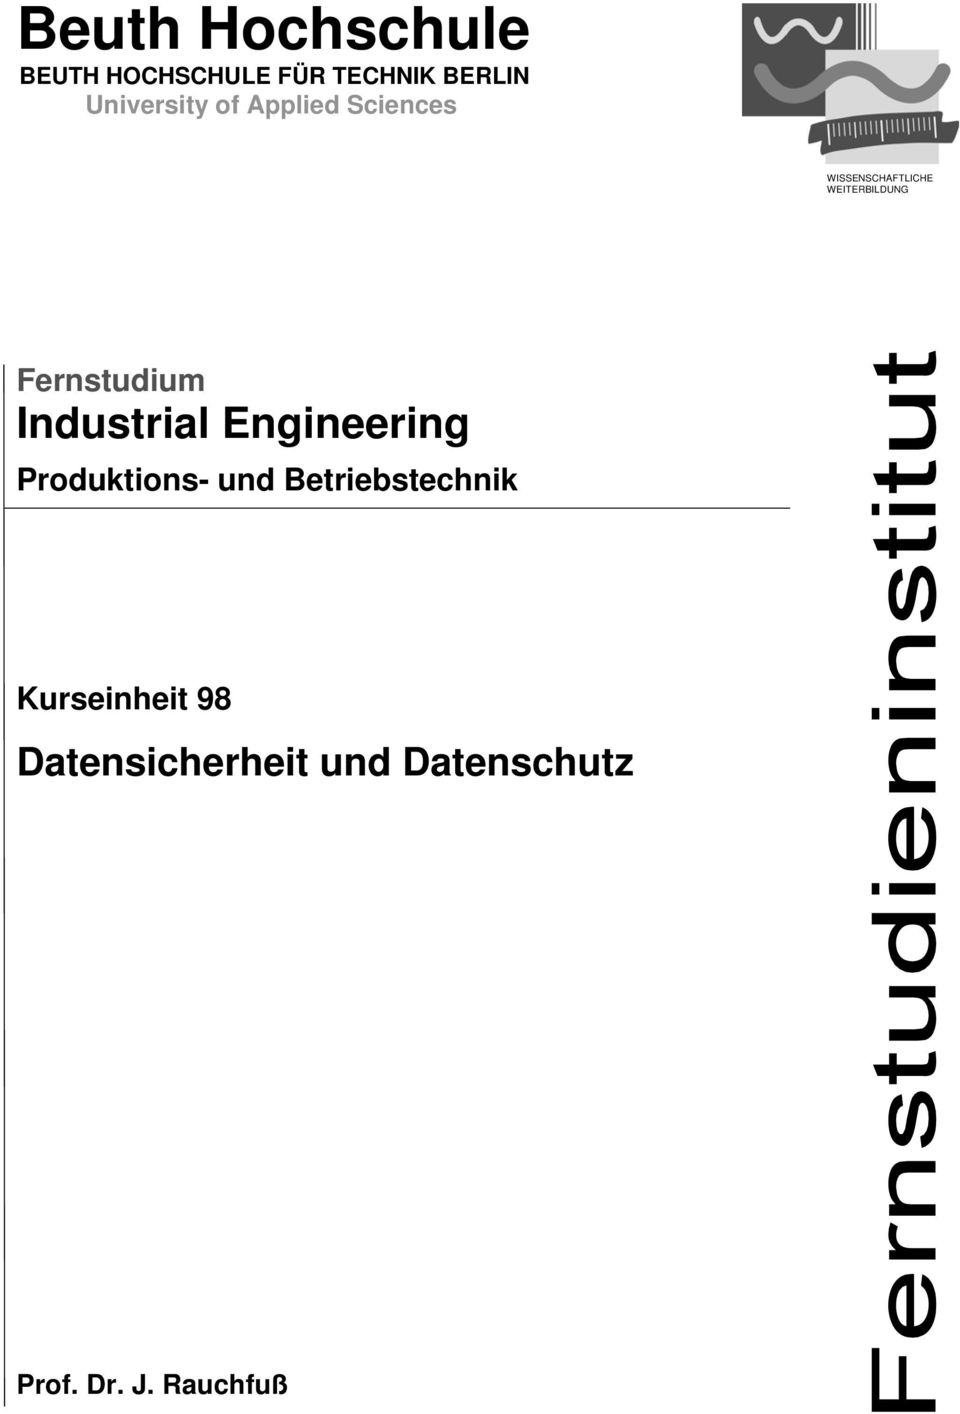 WEITERBILDUNG Fernstudium Industrial Engineering